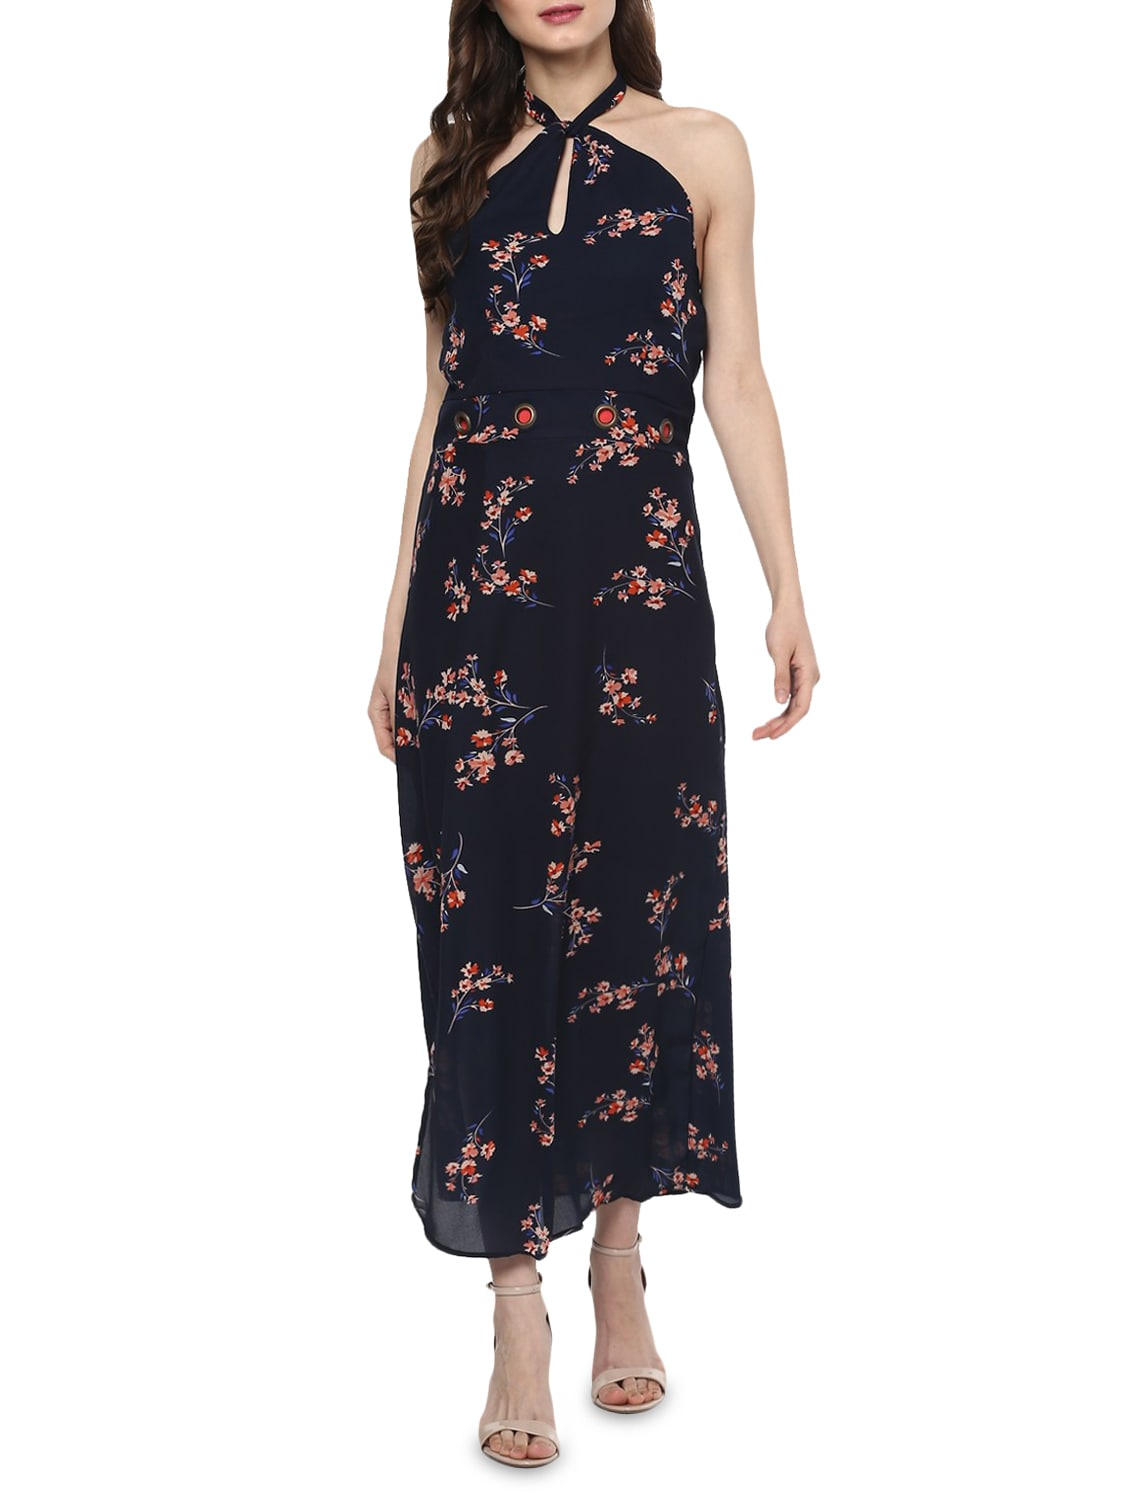 267a51a48f Buy Navy Blue Floral Maxi Dress by Zima Leto - Online shopping for Dresses  in India